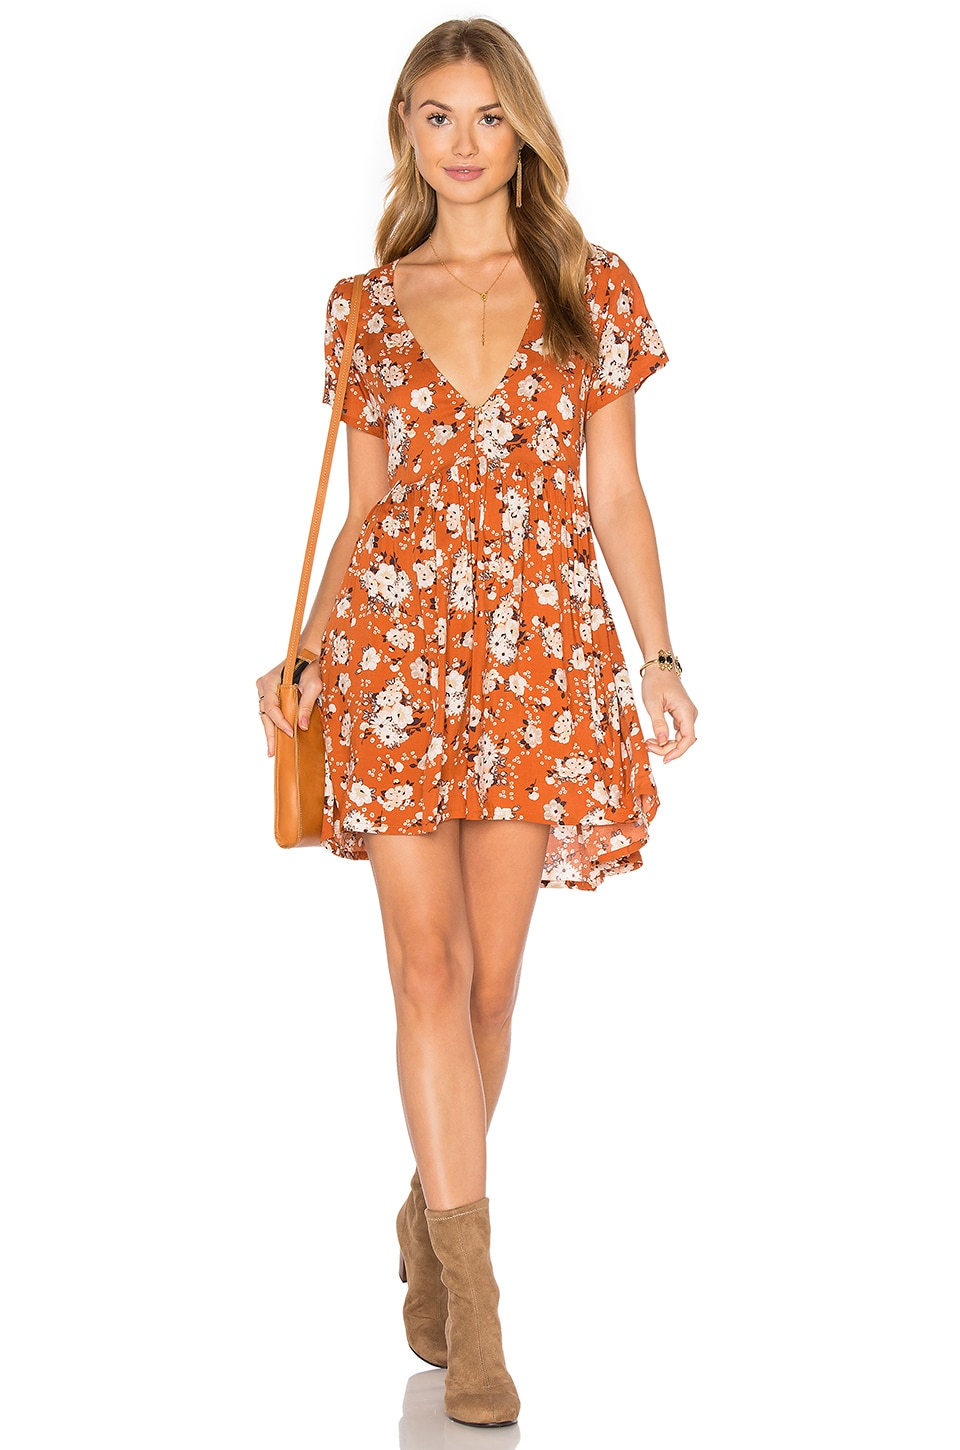 Spell & The Gypsy Collective Gypsy Dancer Dress in Maple